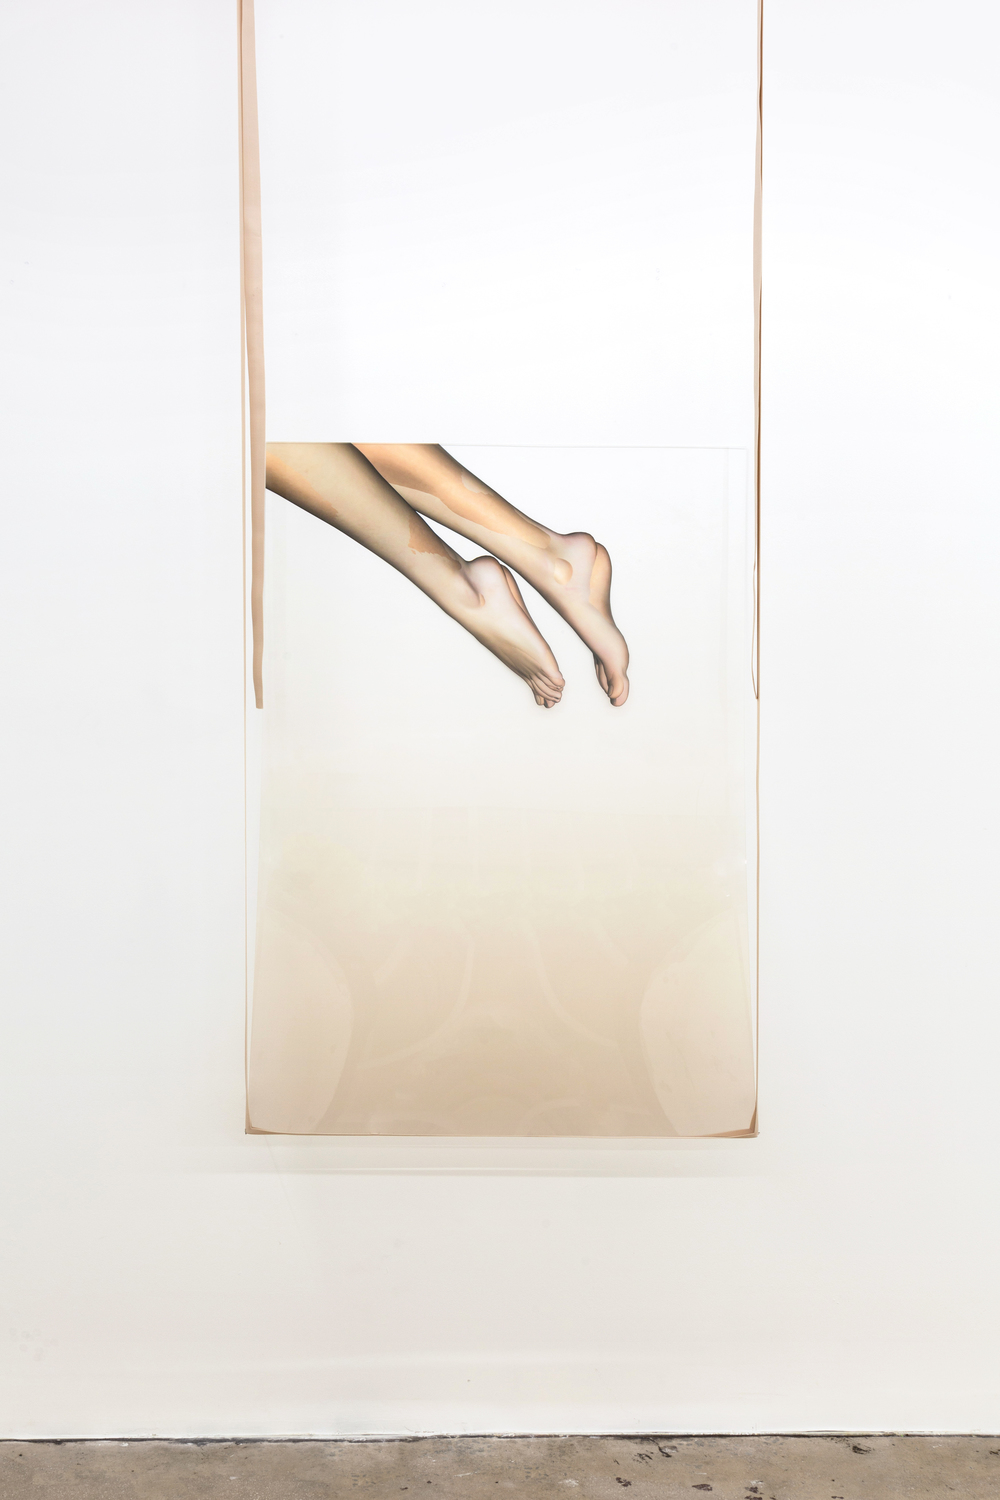 Ivana Basic, Das Unheimliche 1, 2014, installation view